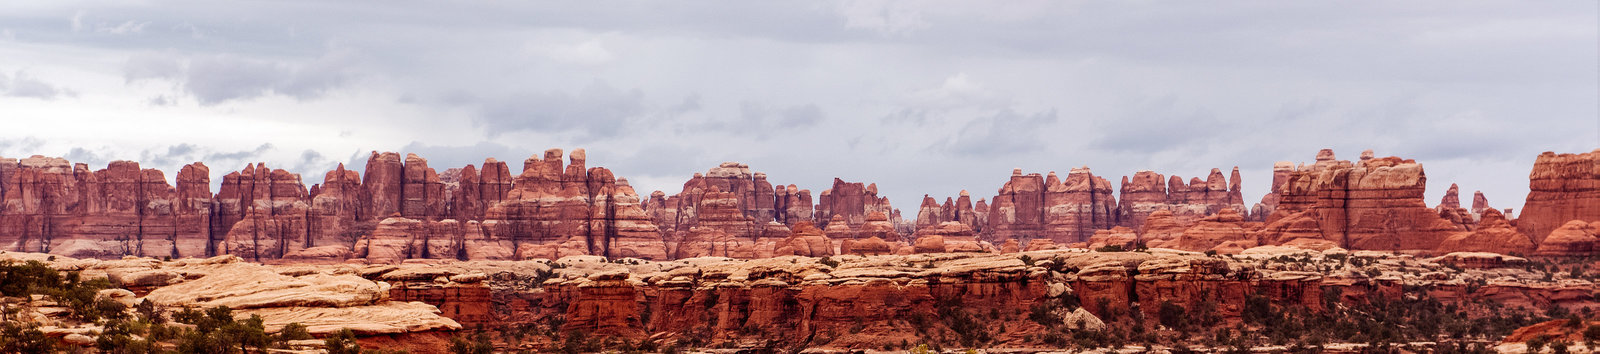 Sasha_Reiko_Photography_Travel_Utah_Arches_Canyon_Lands_Zion_Grand_Canyon-5